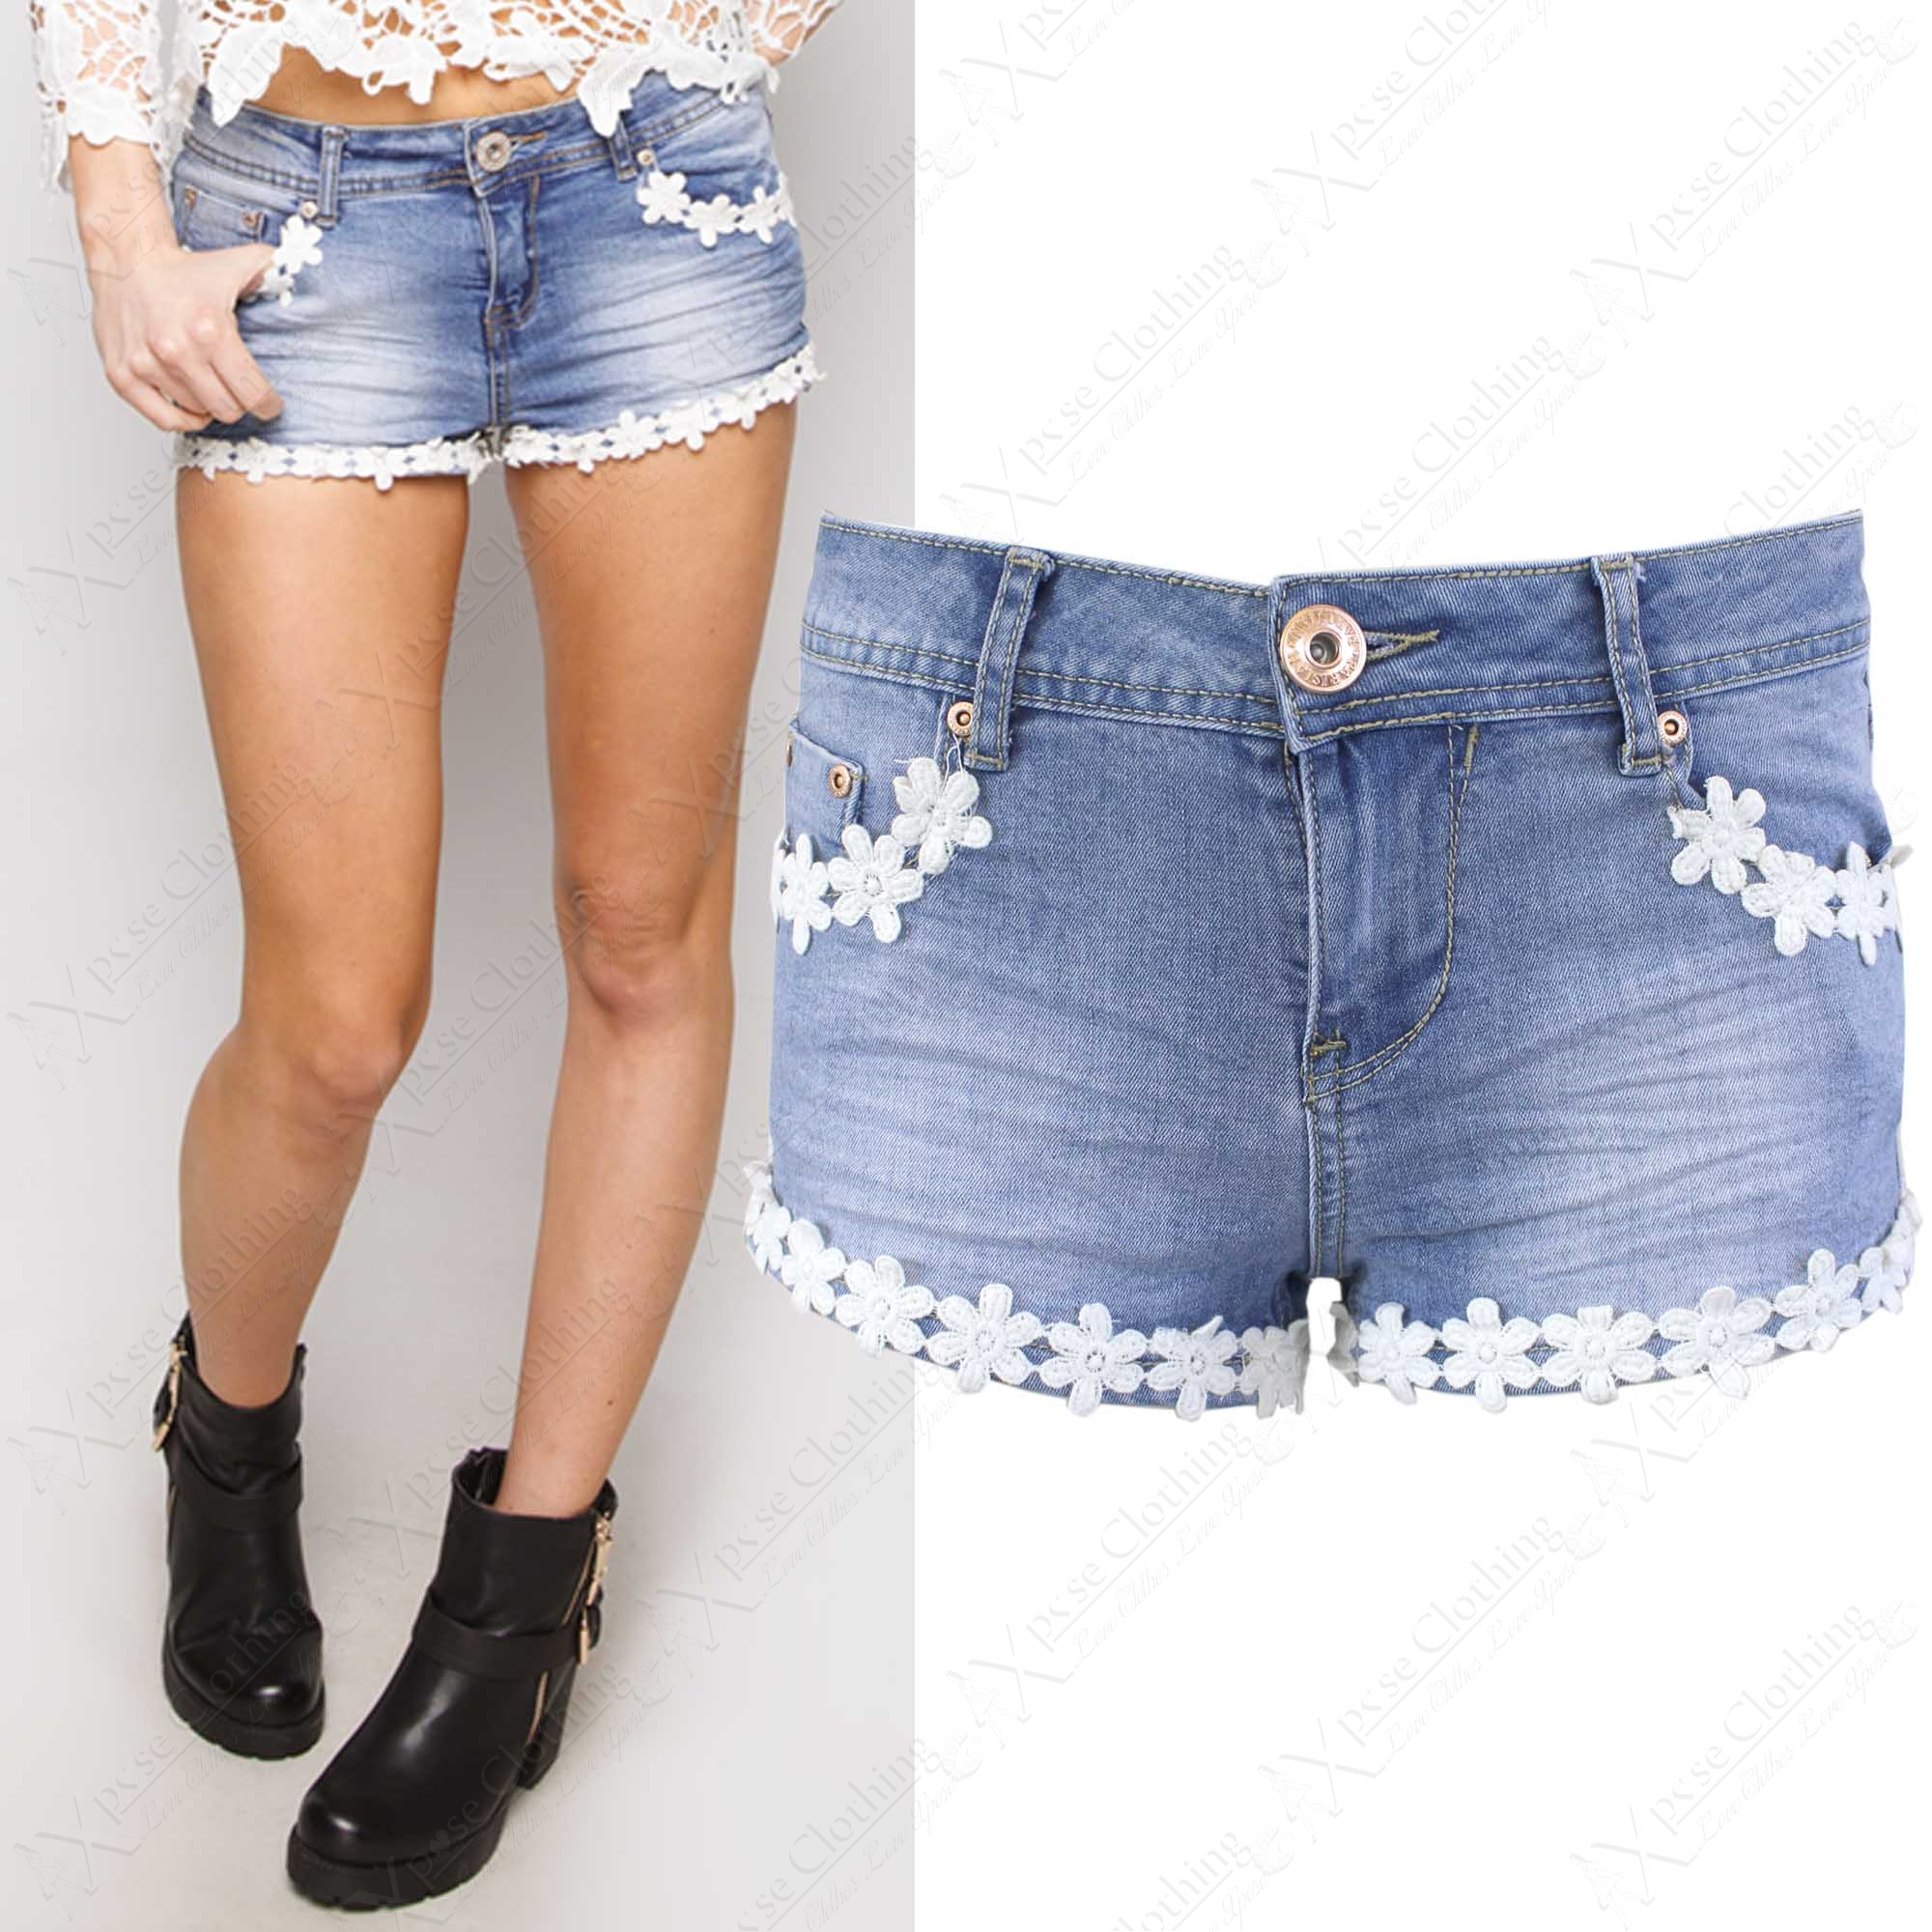 NEW WOMEN BLUE WASH DENIM DAISY FLORAL LACE HOT PANTS LADIES ...